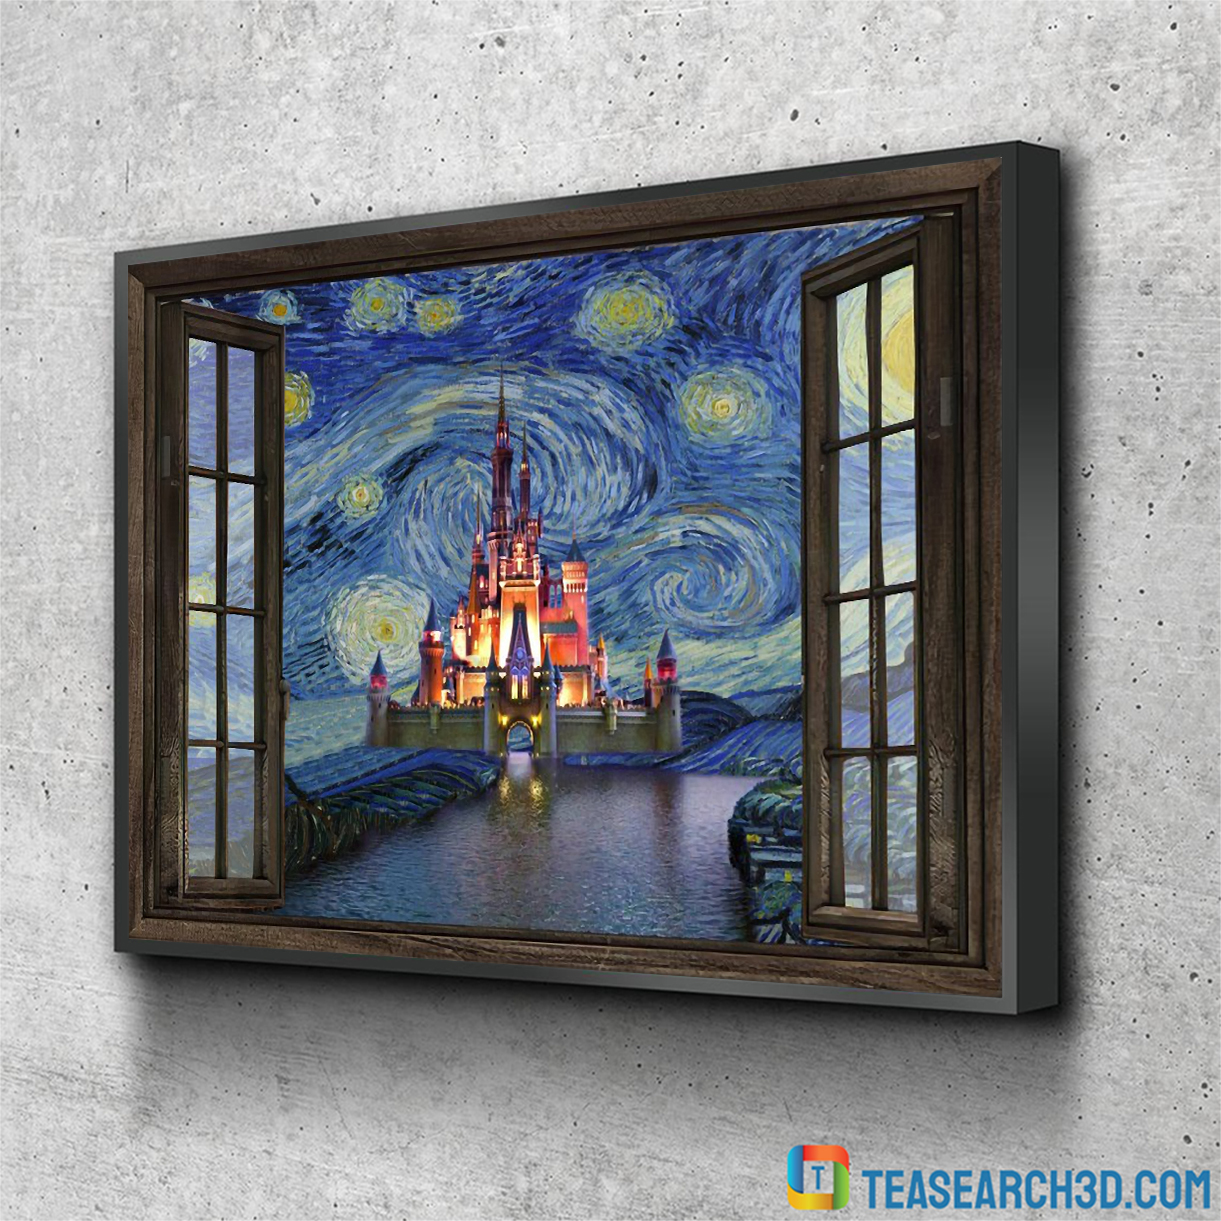 Disney Cinderella castle starry night van gogh window canvas